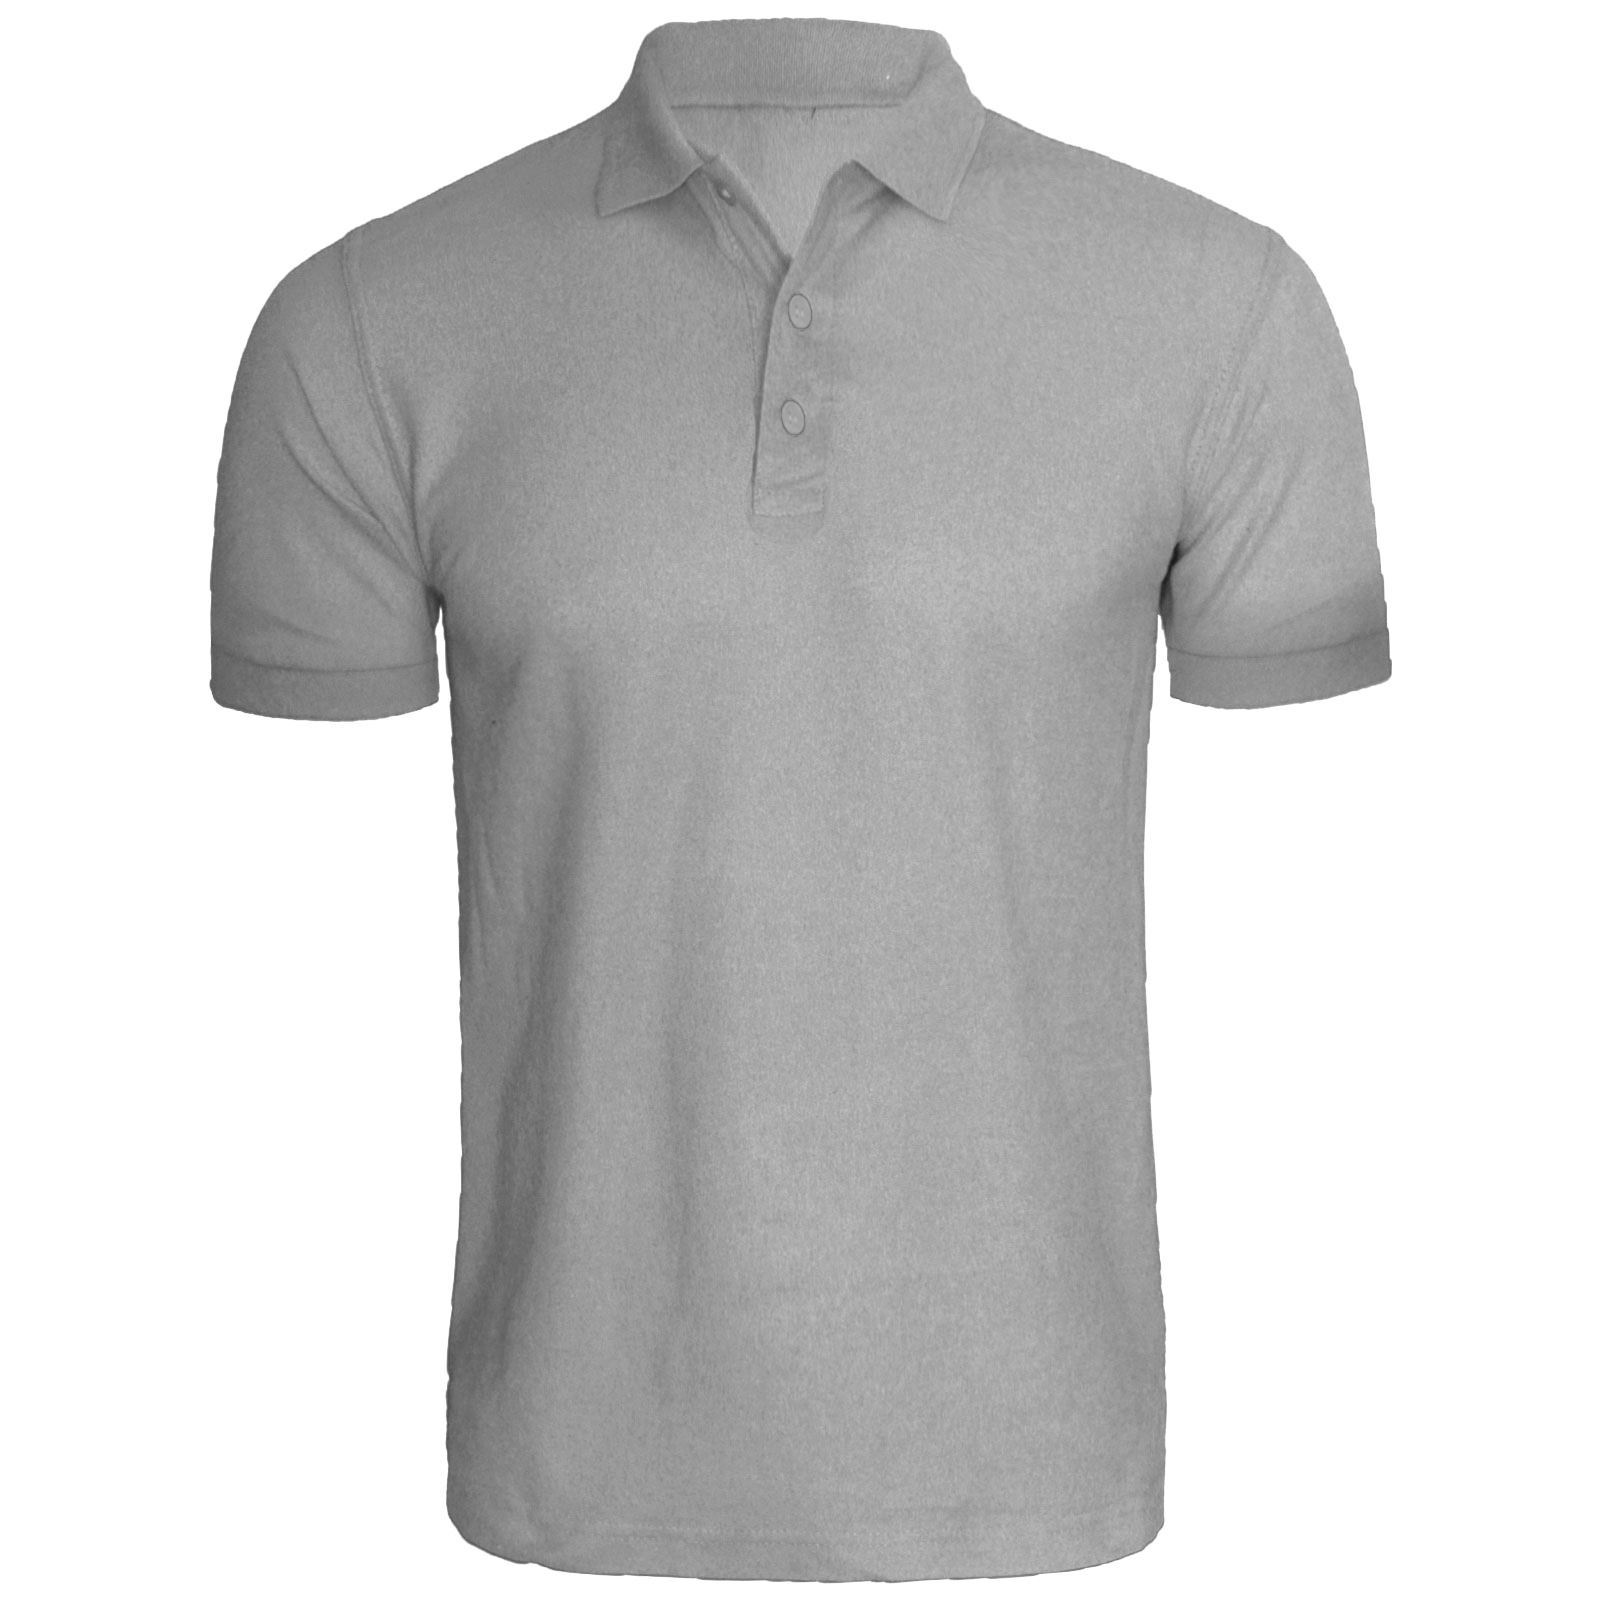 Men's Polo Shirt Mens Summer T-Shirt Short Sleeve Plain ...